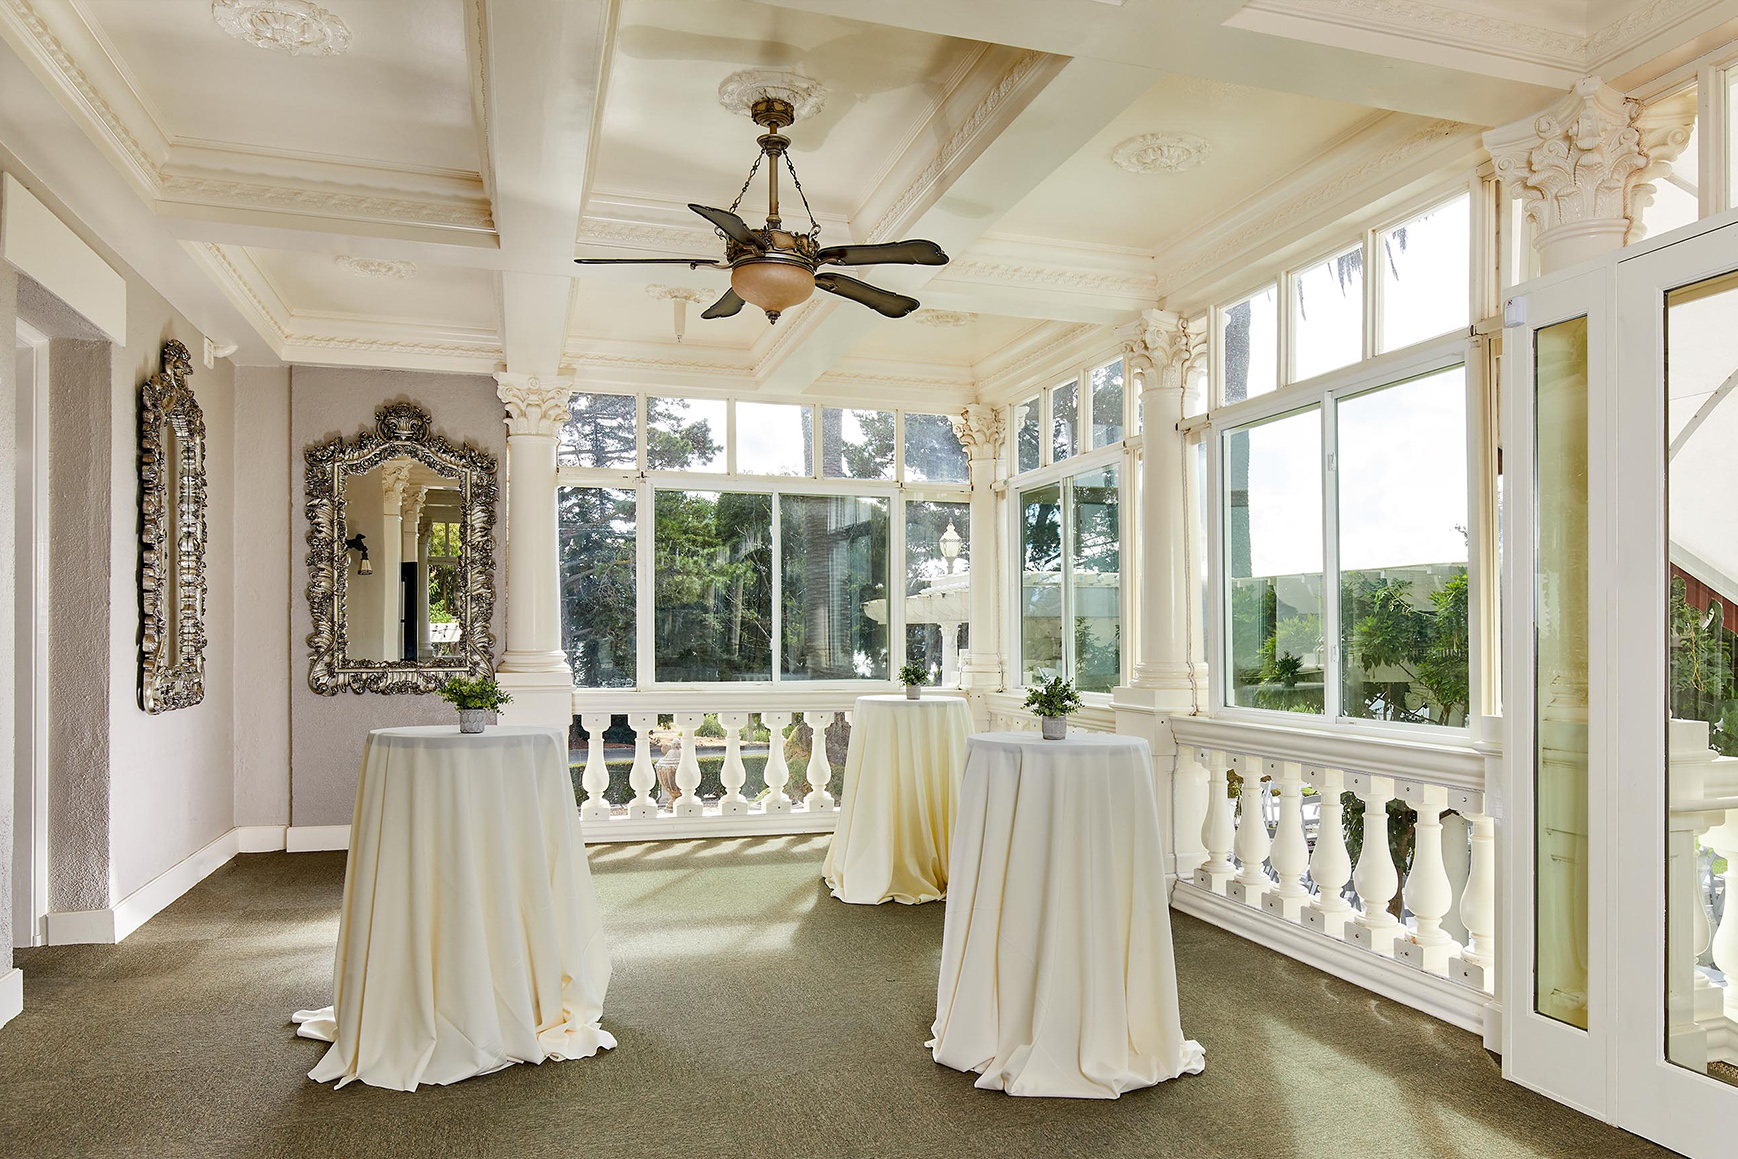 Sunlight veranda for cocktail hour  - Jefferson Street Mansion - Benicia, California - Solano County - Wedgewood Weddings